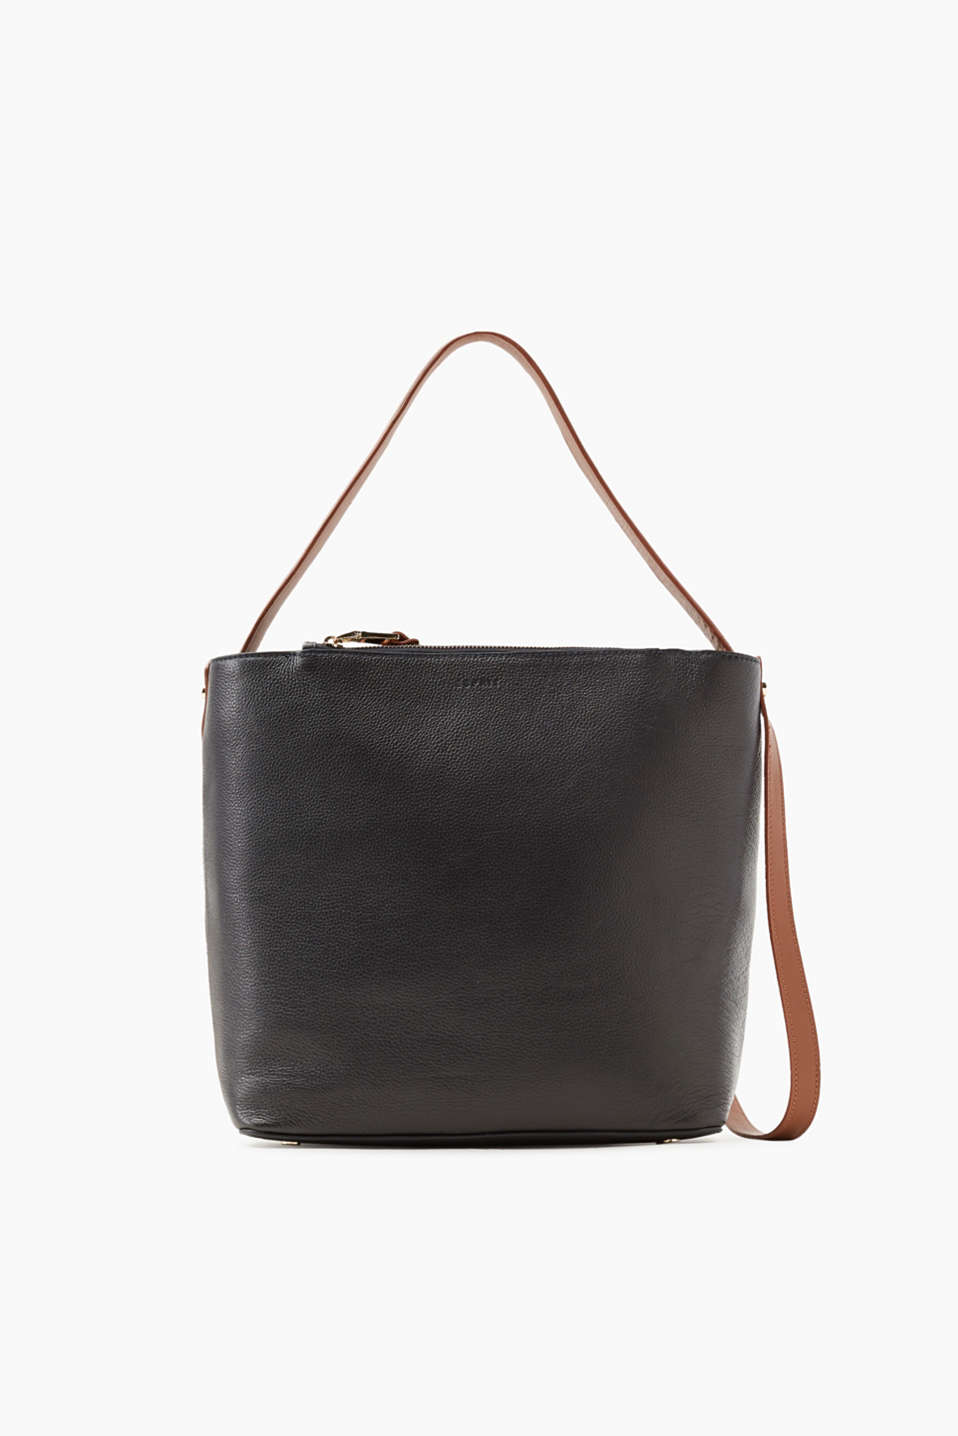 Esprit - Two-tone leather shoulder bag